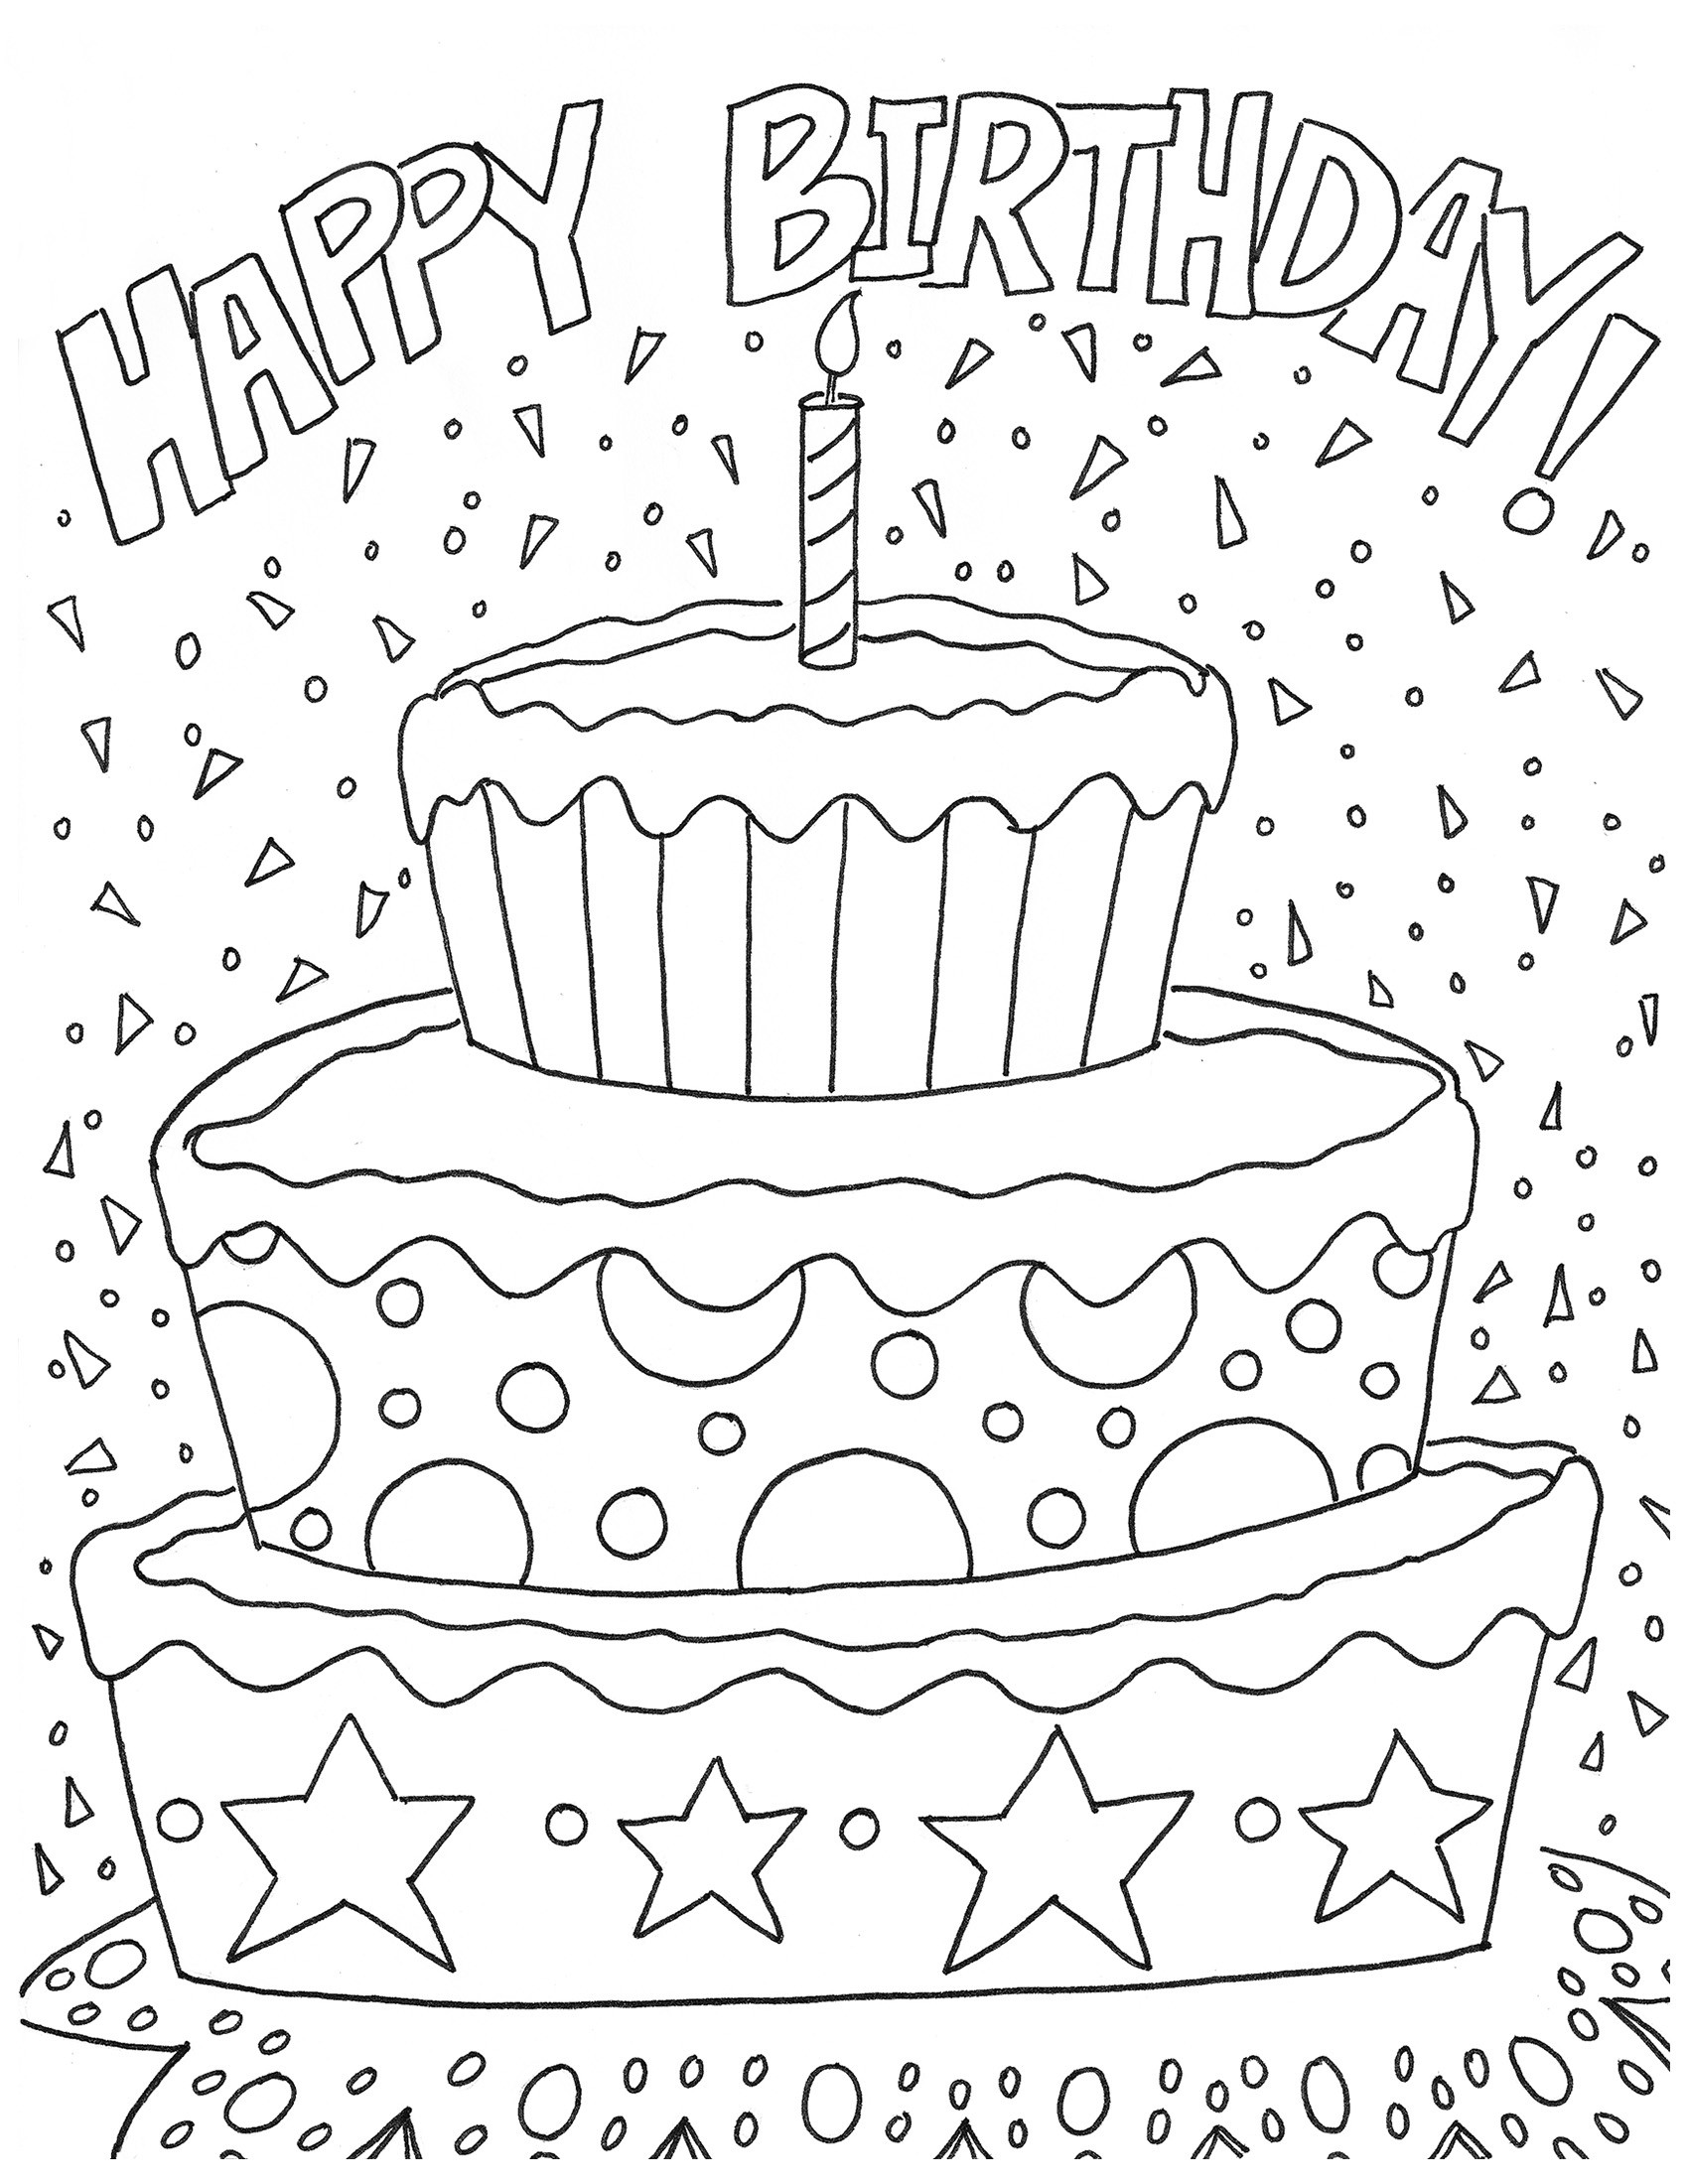 funny happy birthday drawings ; coloring-pages-happy-birthday-best-of-happy-birthday-coloring-page-colouring-for-funny-draw-of-coloring-pages-happy-birthday